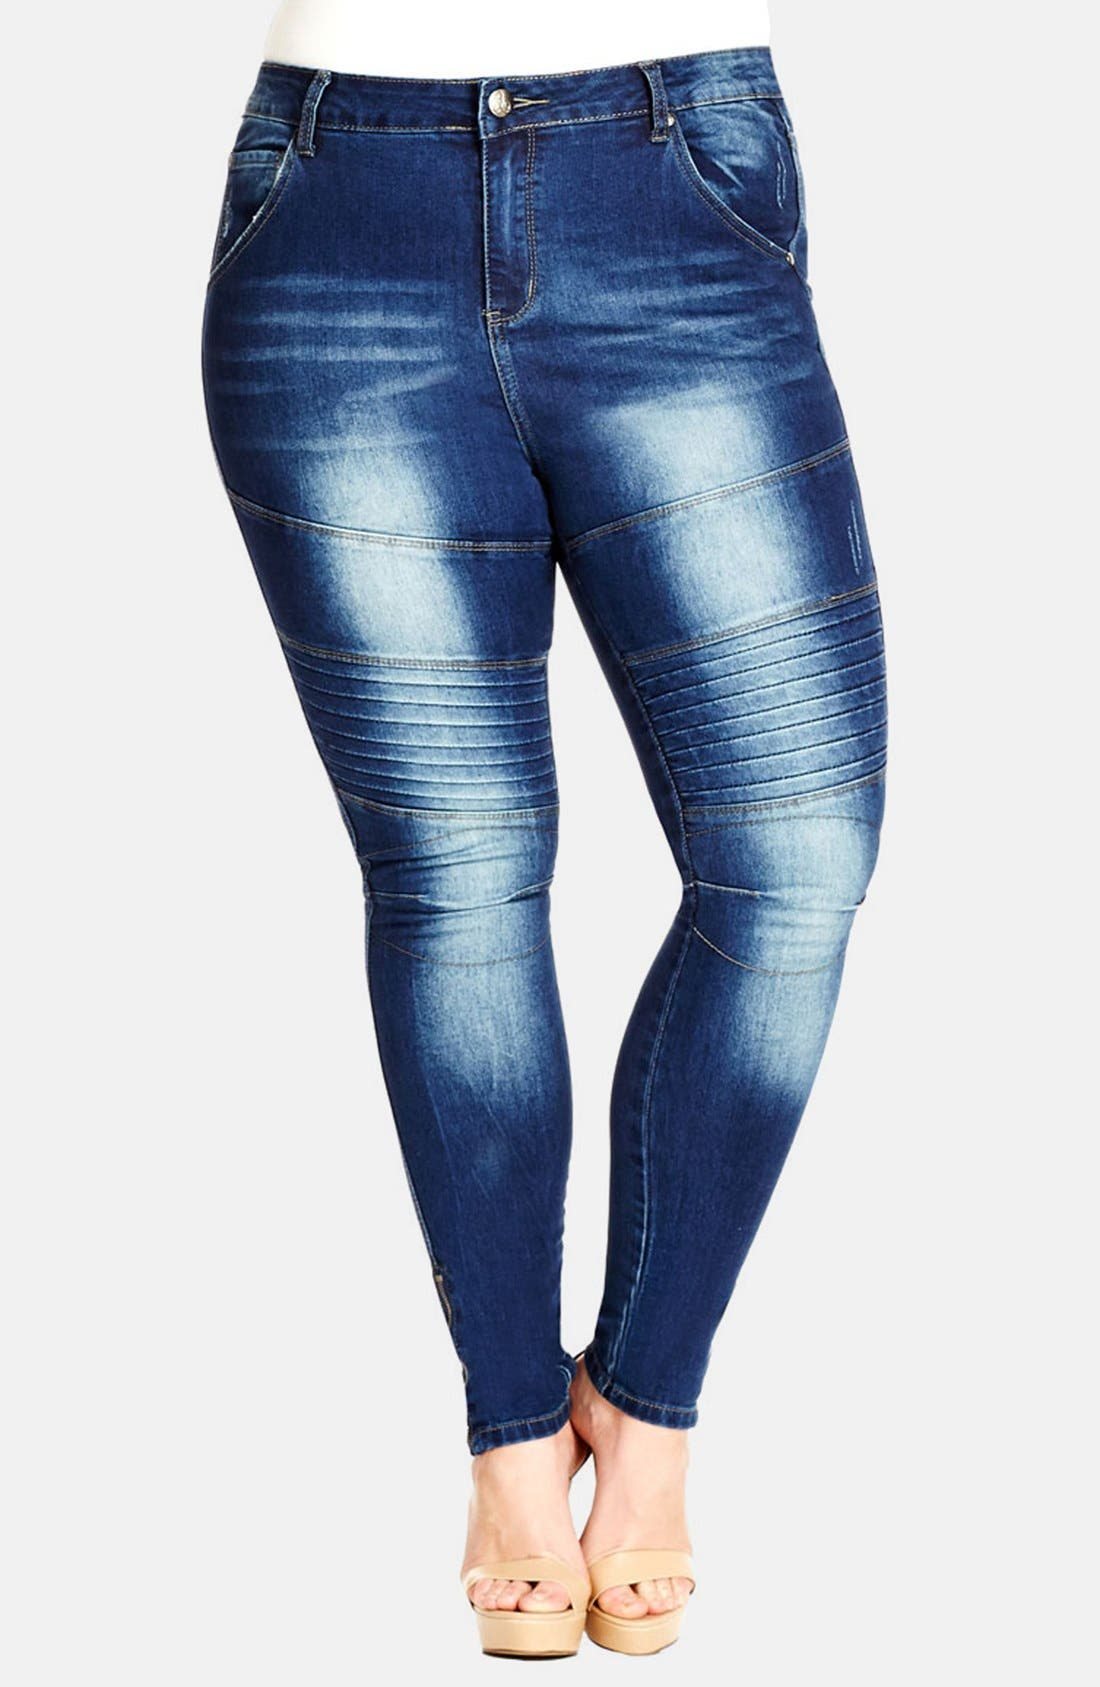 Main Image - City Chic 'MX Apple' Stretch Skinny Jeans (Medium Denim) (Plus Size)